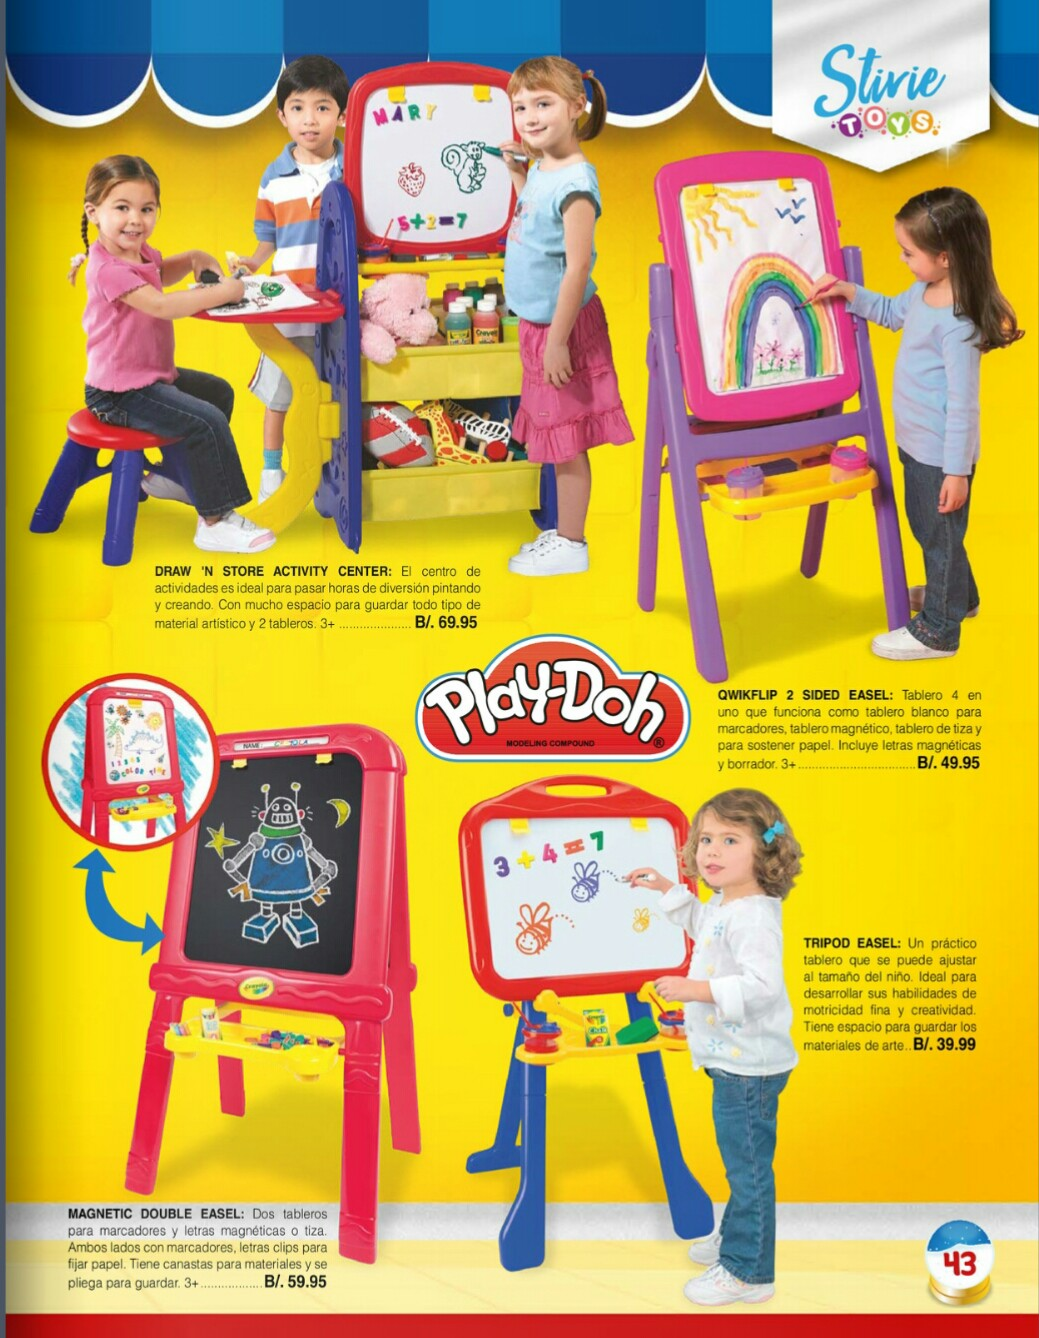 Catalogo juguetes Stivie toys 2018 p43